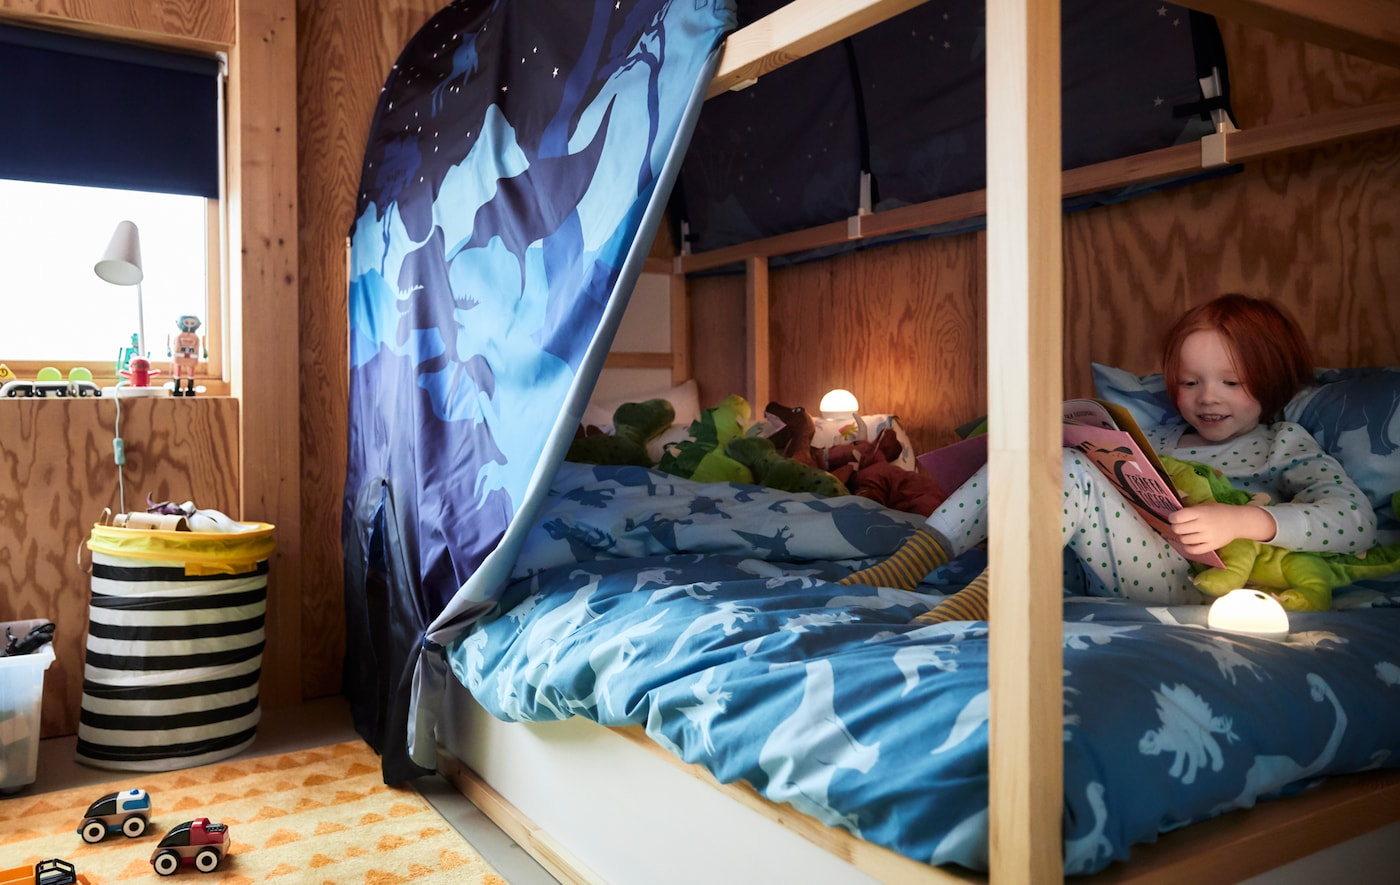 A child cuddles up with her toy dinosaur on her KURA bed, reading a storybook under a bed tent also covered in dinosaurs.